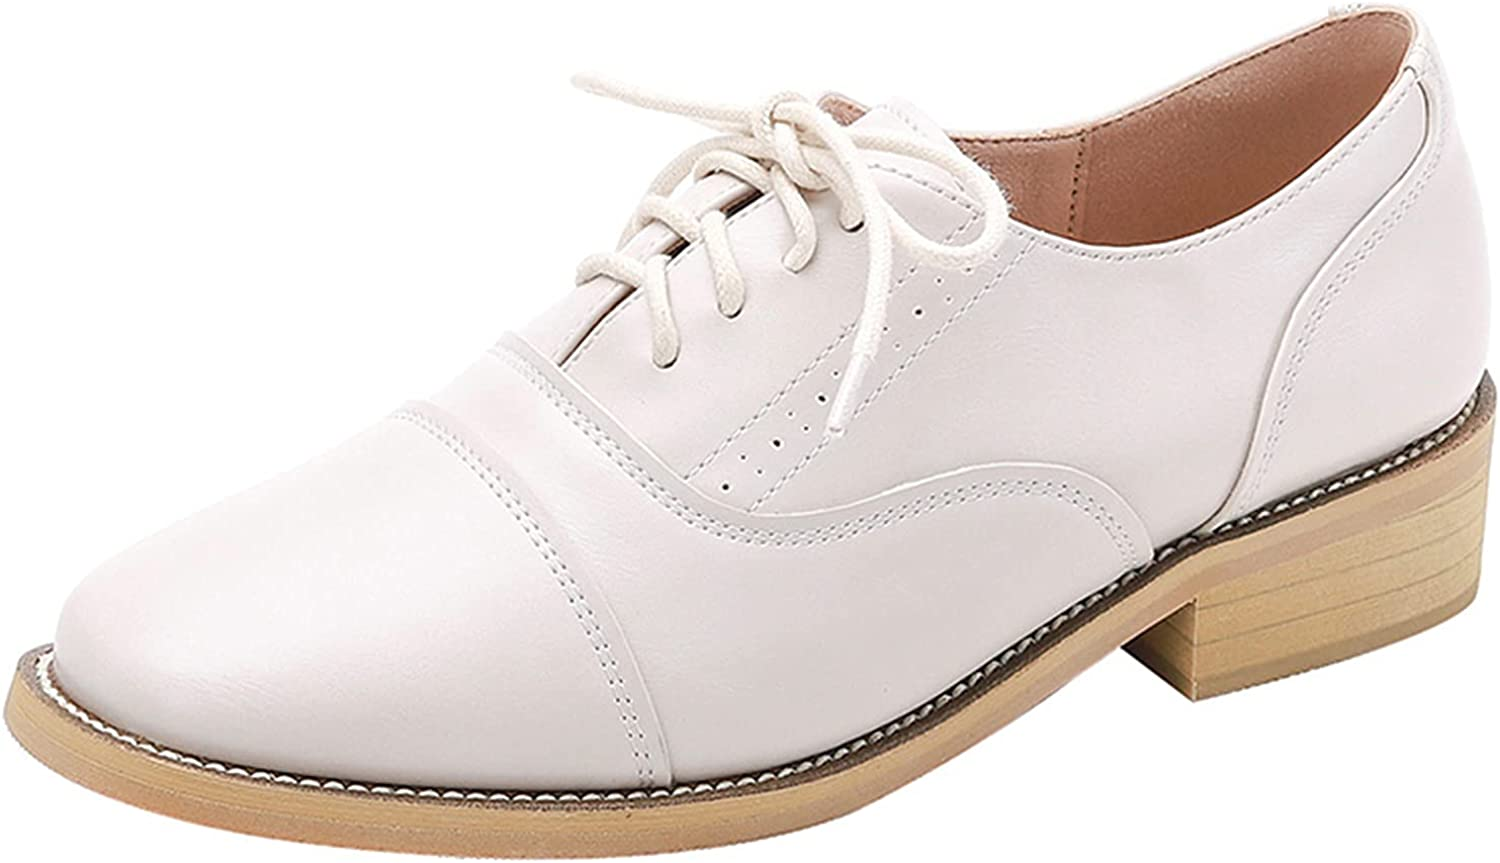 Women's Fashion Leather Shoes Low-top Vintage Dealing full price reduction British shop Lace